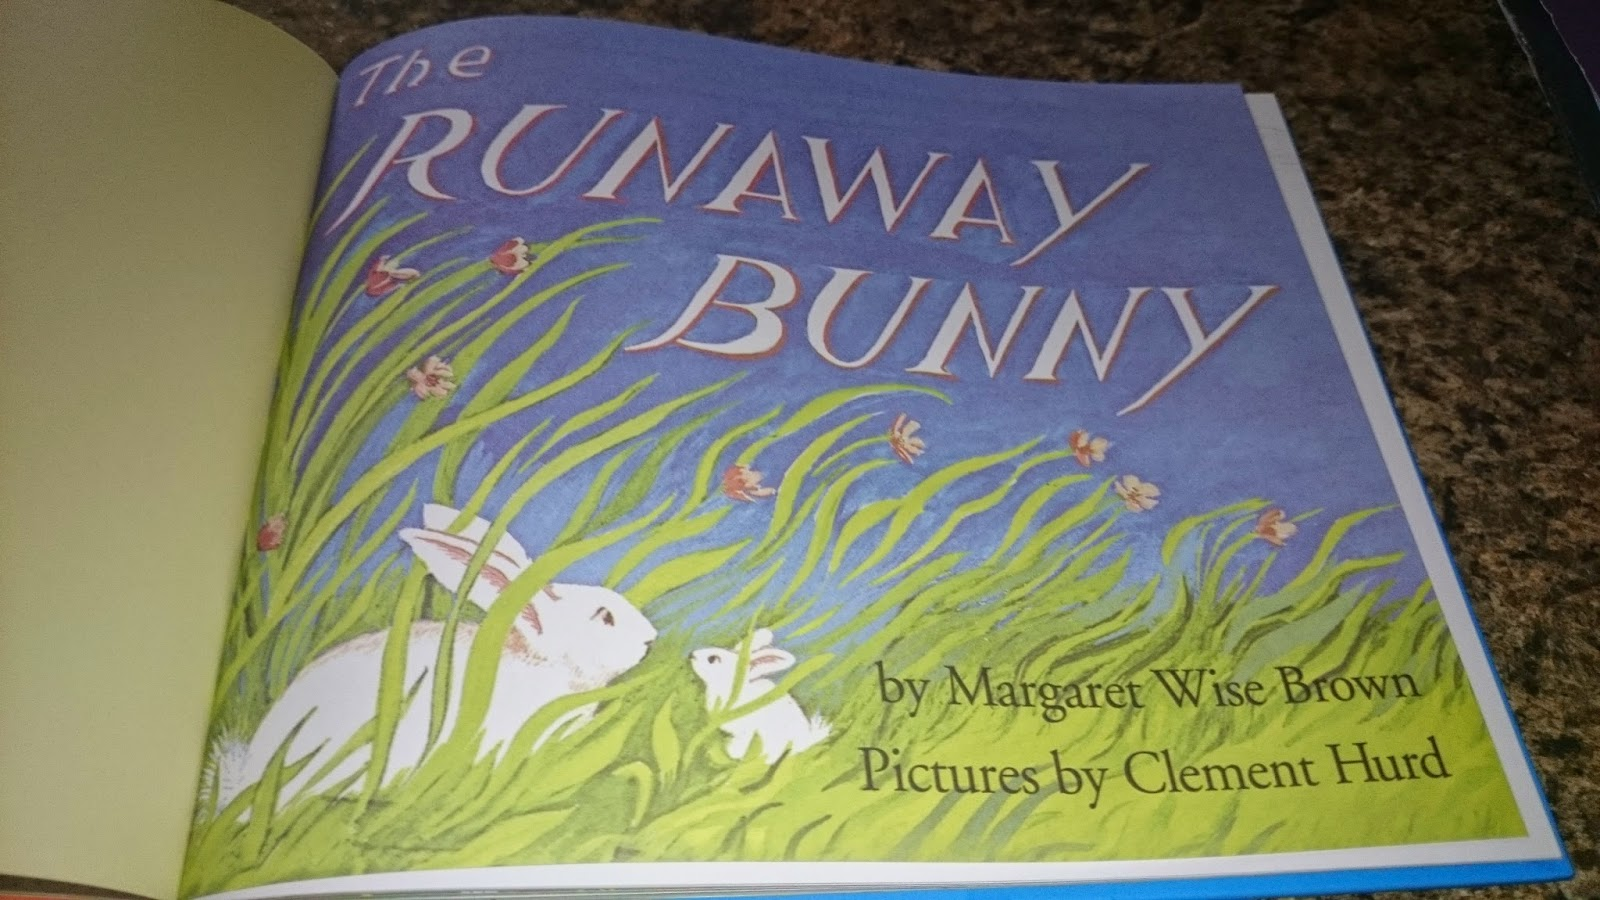 Creation and The Runaway Bunny